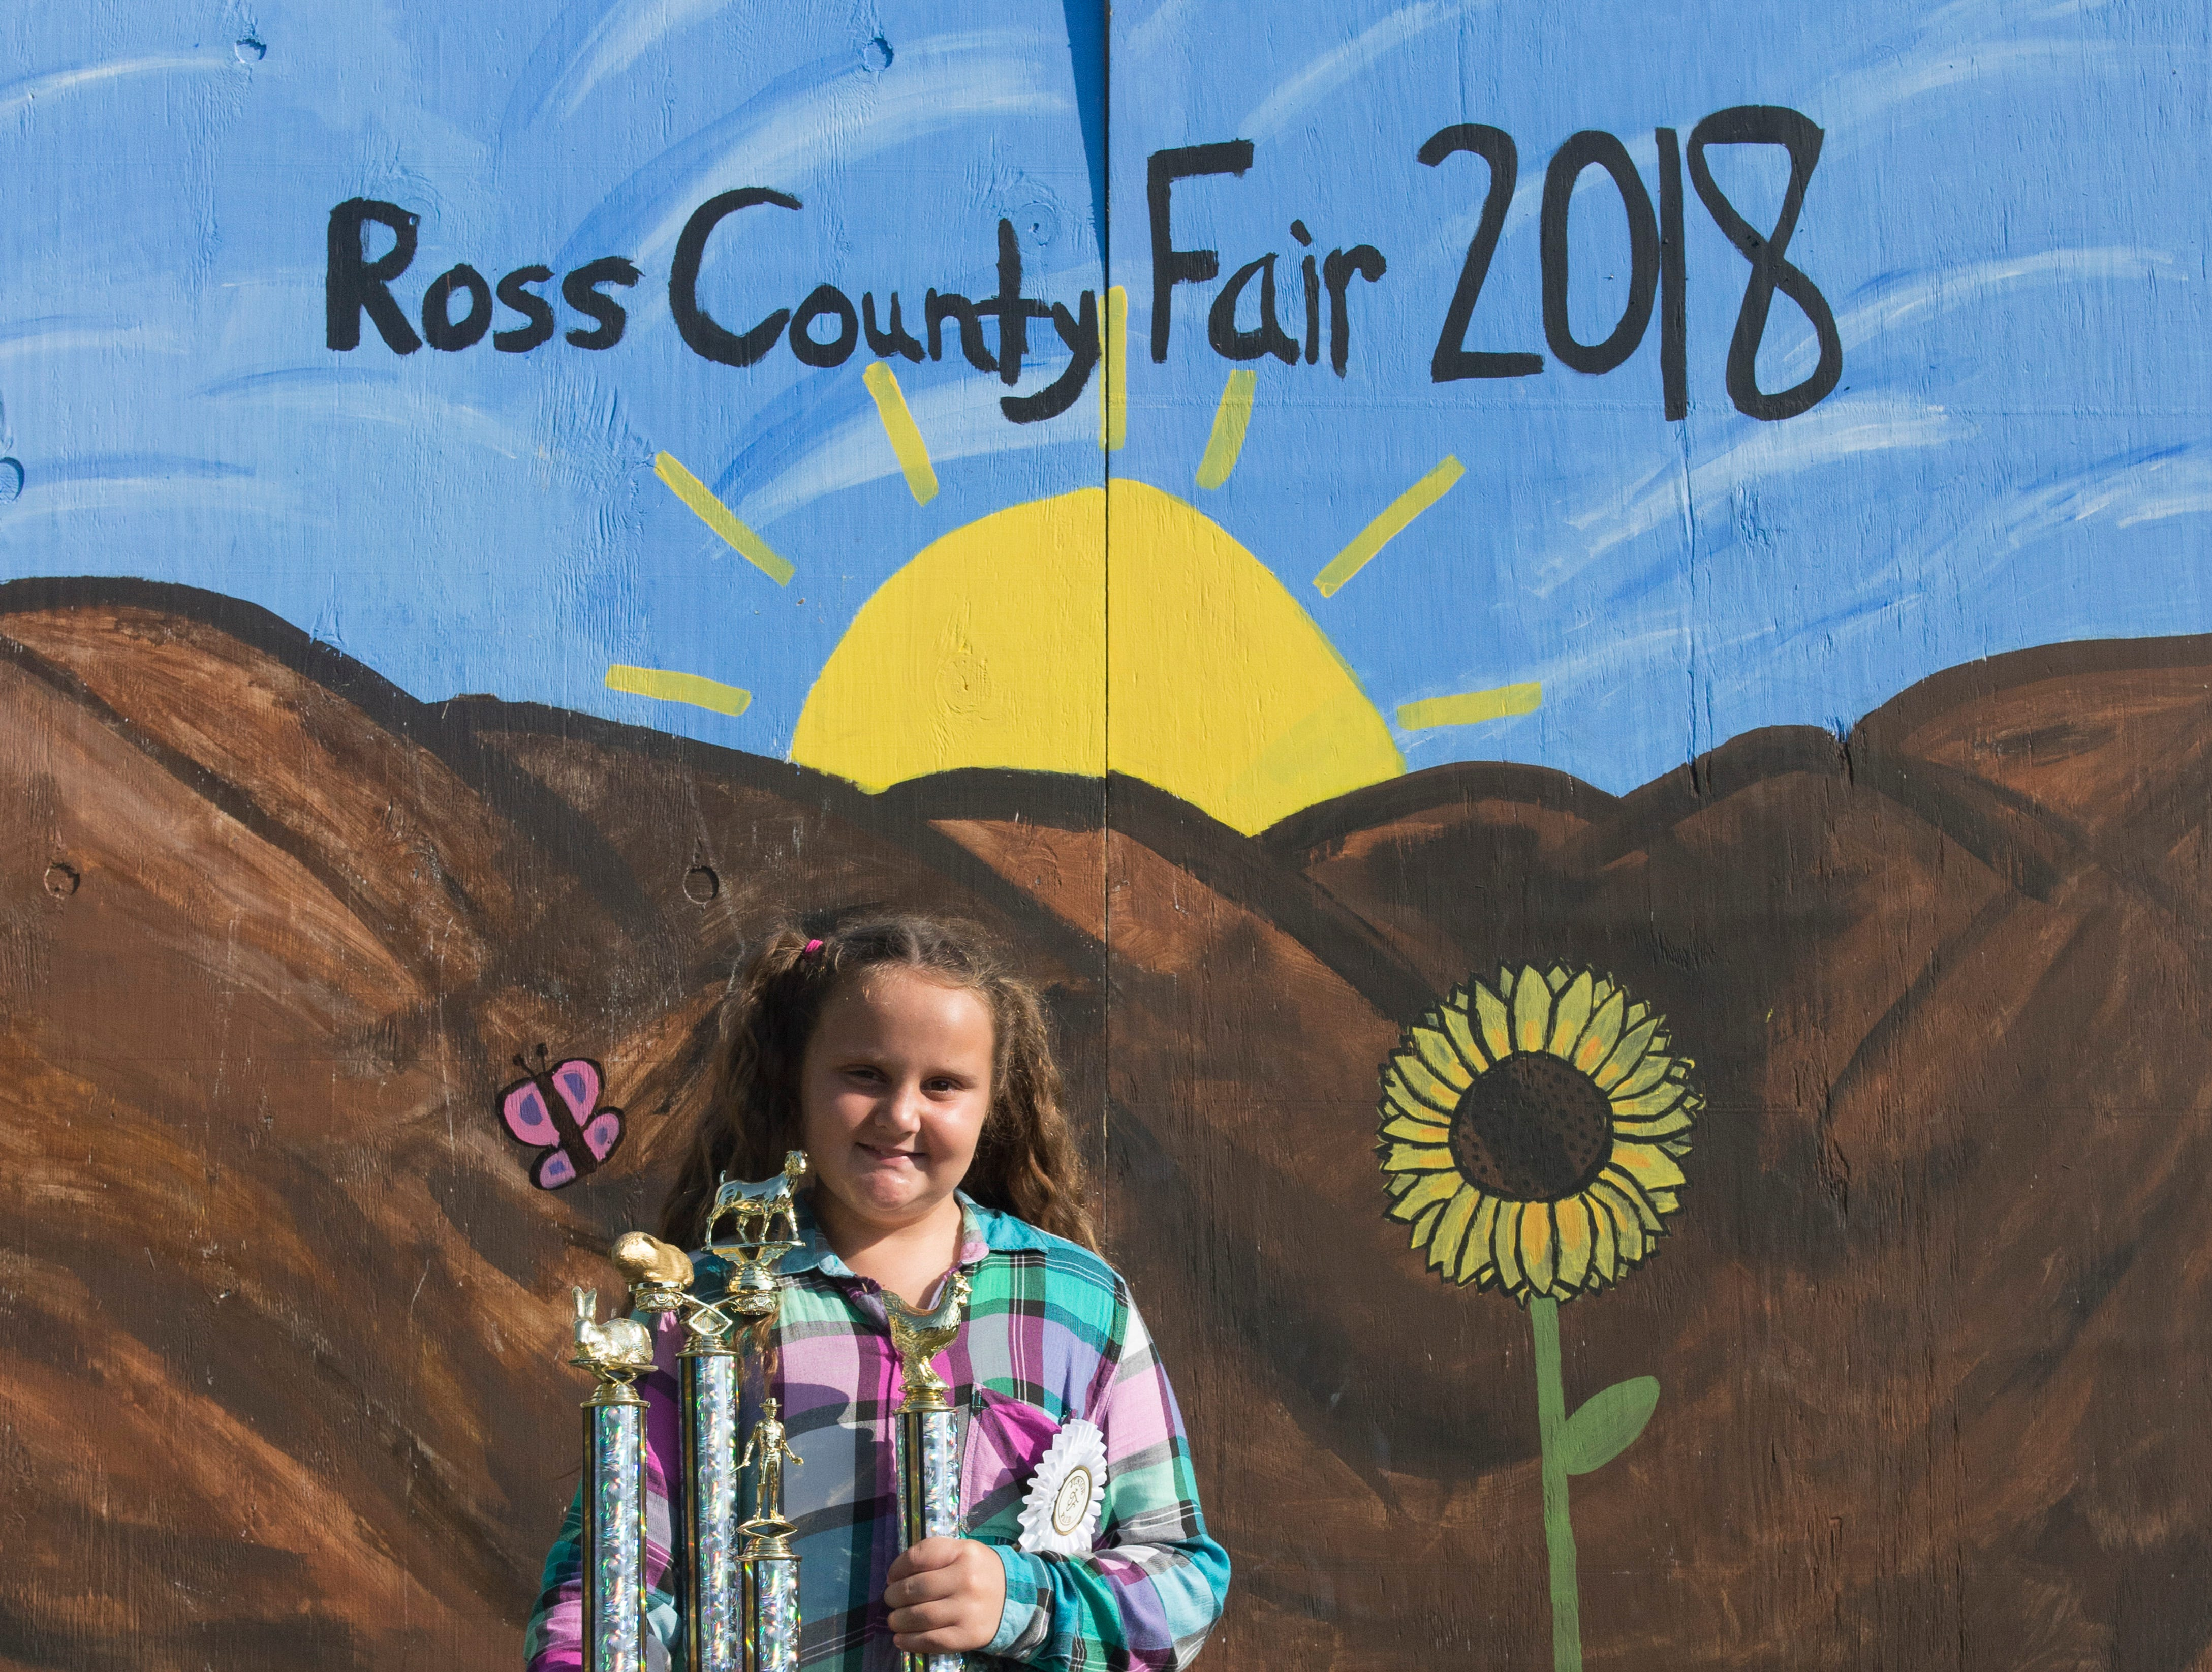 Cambriana Rittinger, 9, poses with her trophy after being awarded the title of First Place in the Junior category for the Small Animal Showman of Showmen Contest at the Ross County Fair on August 9, 2018 in Chillicothe, Ohio.